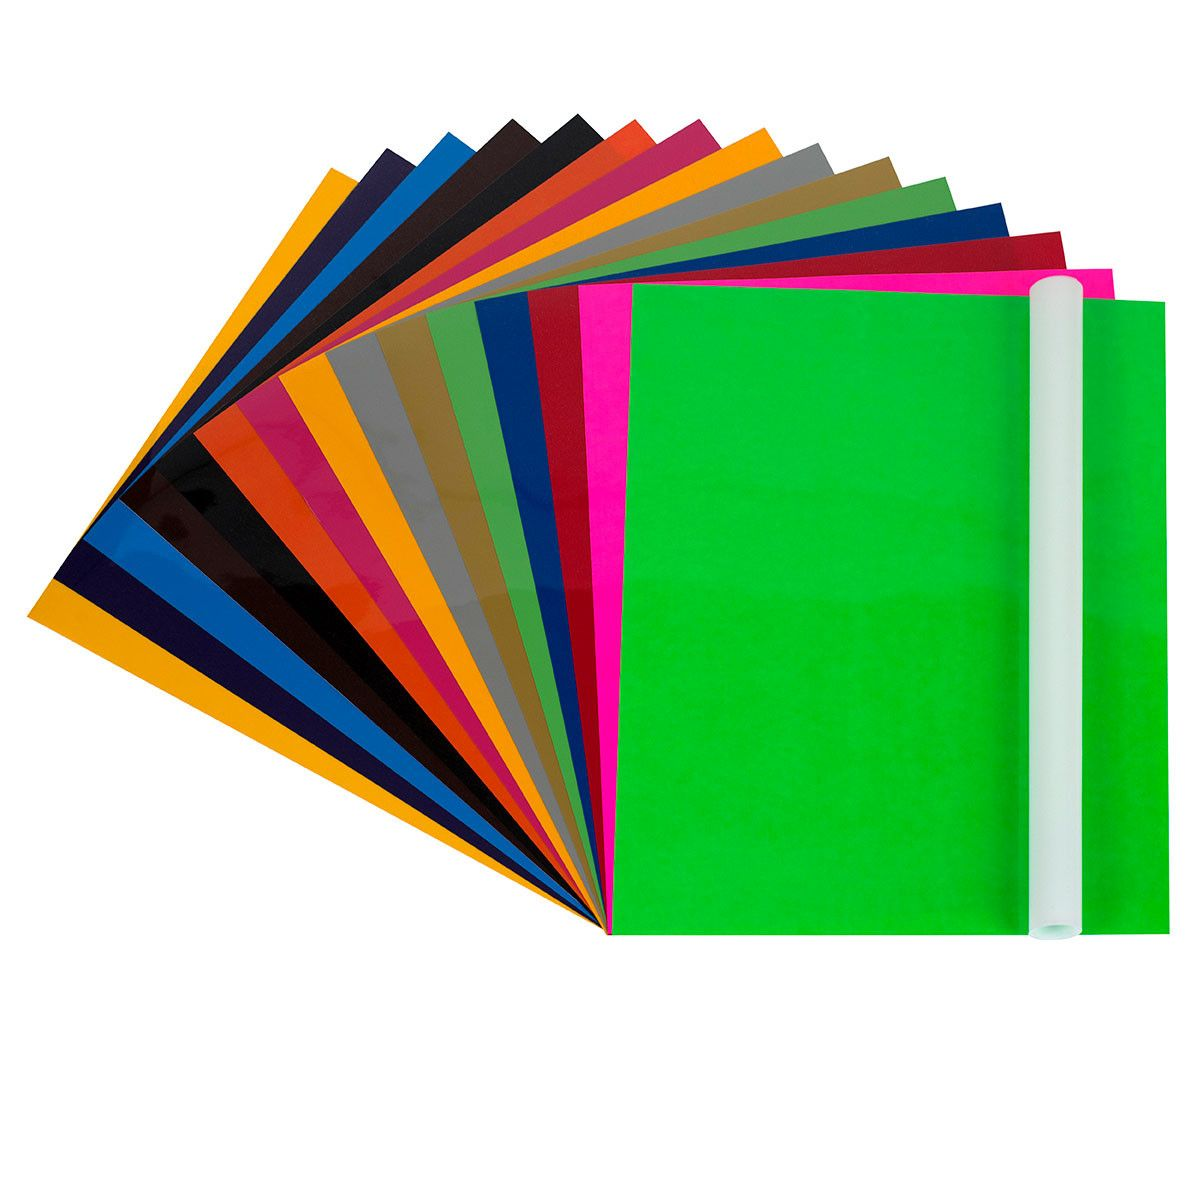 Vinyl sheets for crafts - Angel Crafts 12 X 10 Heat Transfer Vinyl Sheets 16 Pack With